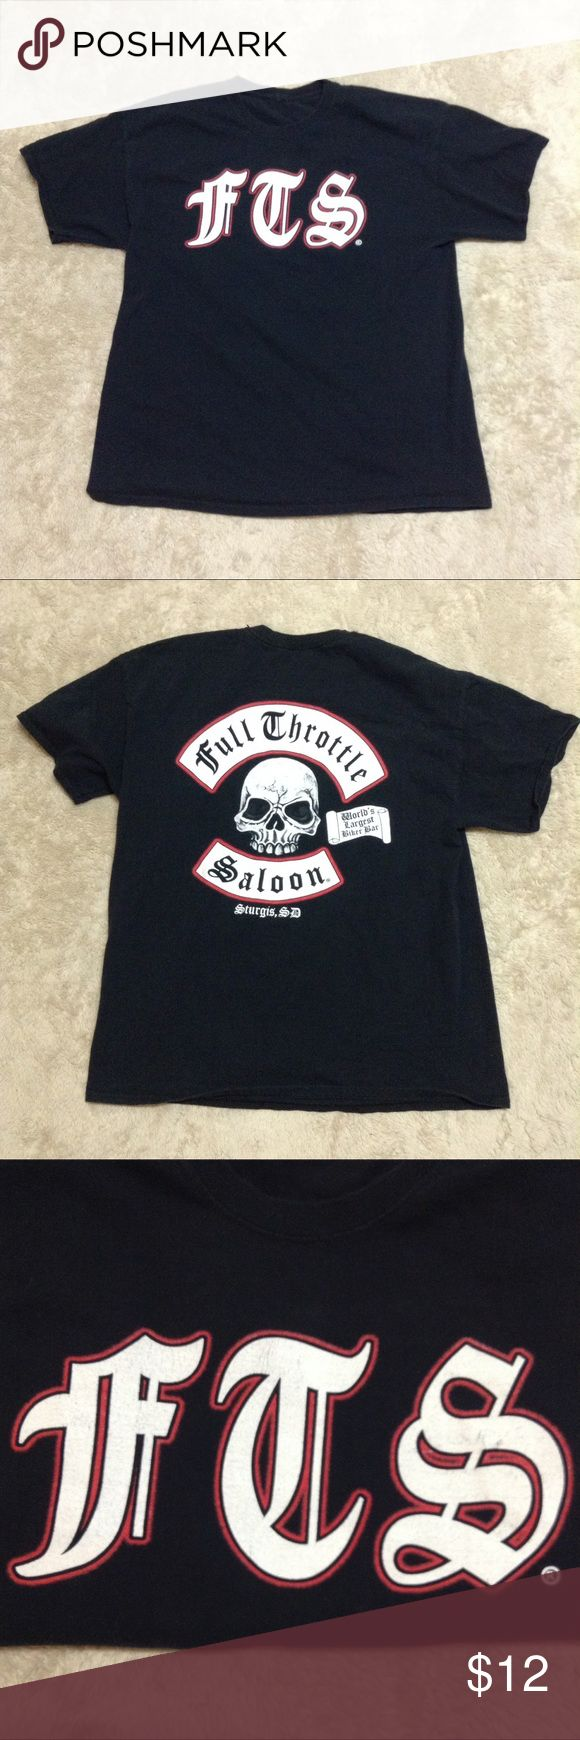 Full Throttle Saloon t shirt Full throttle saloon tshirt some cracking on the logo but still in good shape no size tag but looks to be an XL Full Throttle Shirts Tees - Short Sleeve